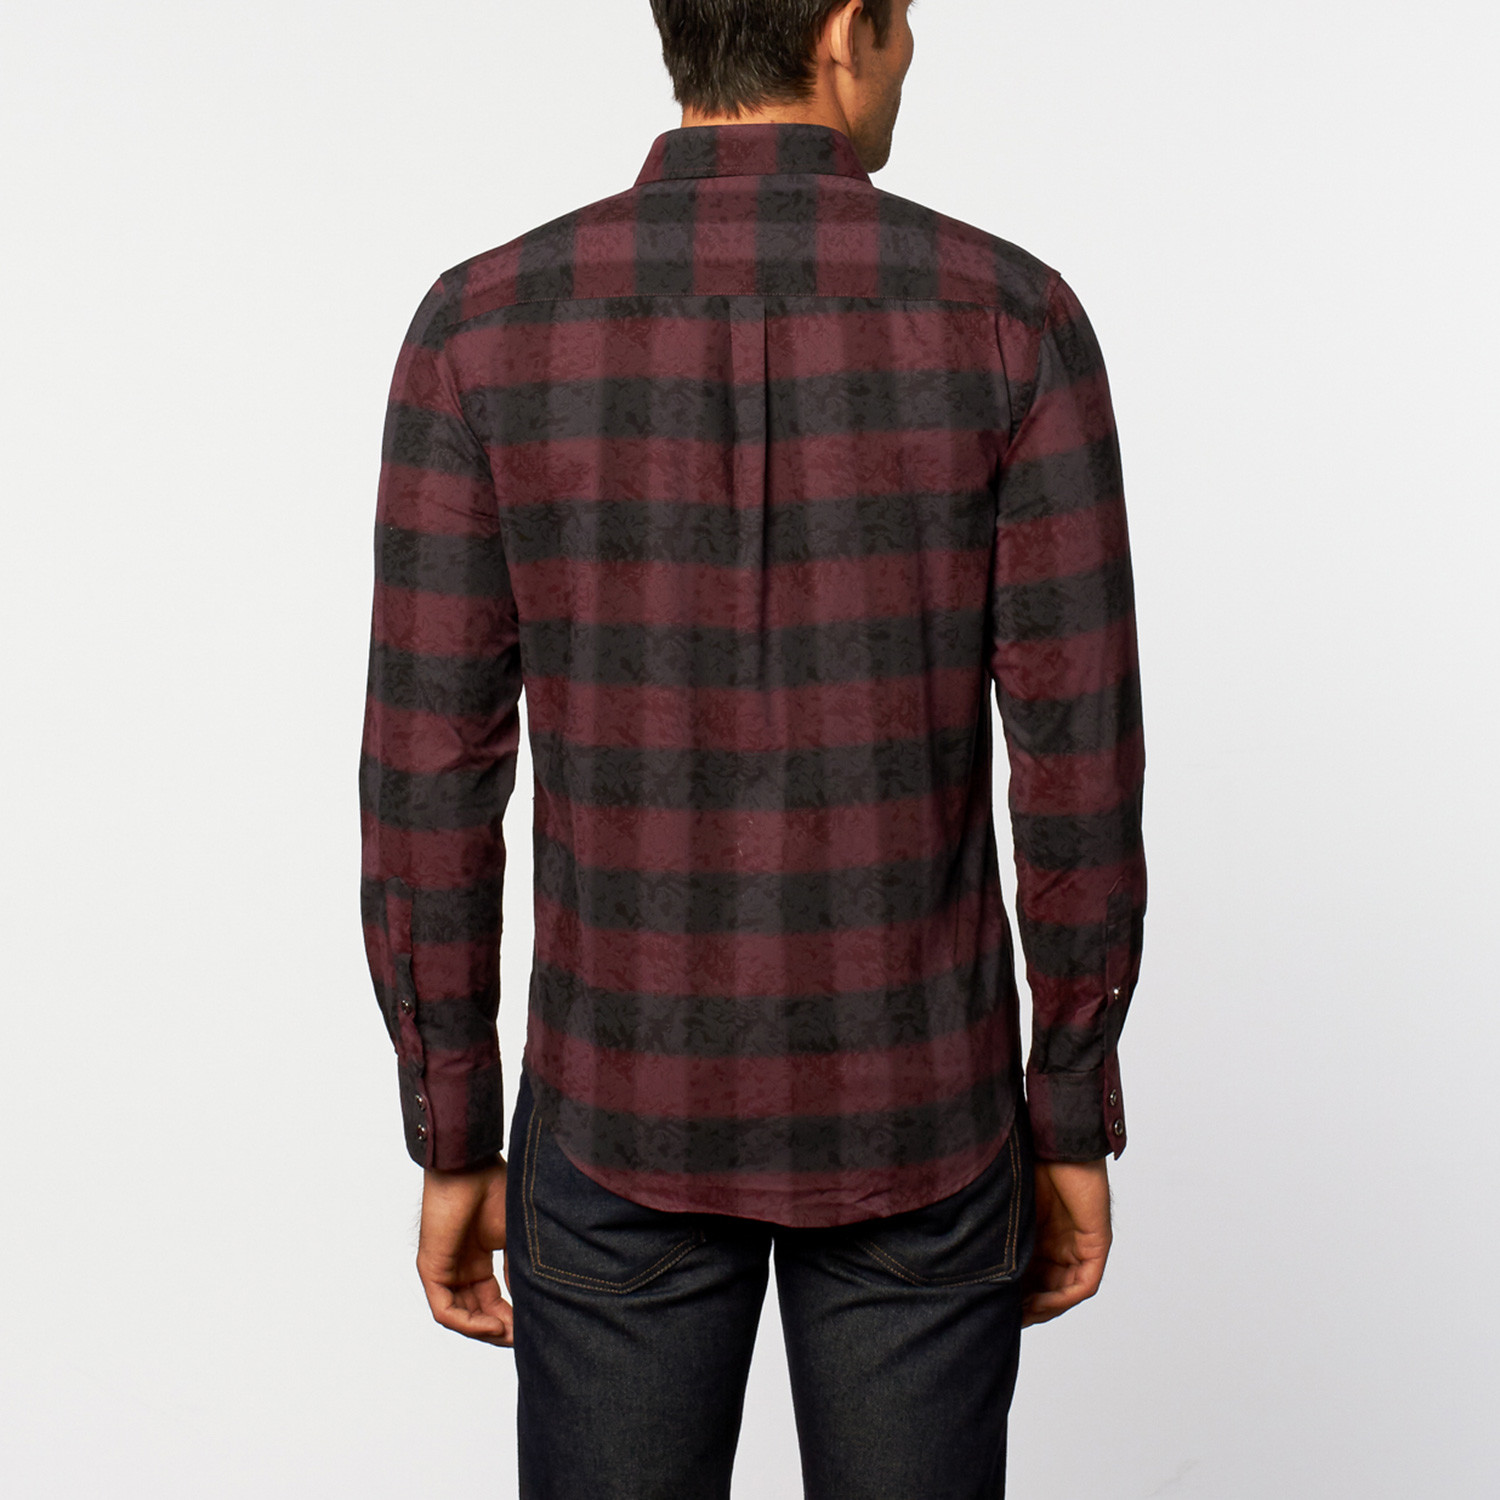 When it comes to women's button down shirts, maurices has the shirt for you. Choose from a wide assortment of denim shirts, flannel shirts and plaid shirts for a look that empowers style and fashion.